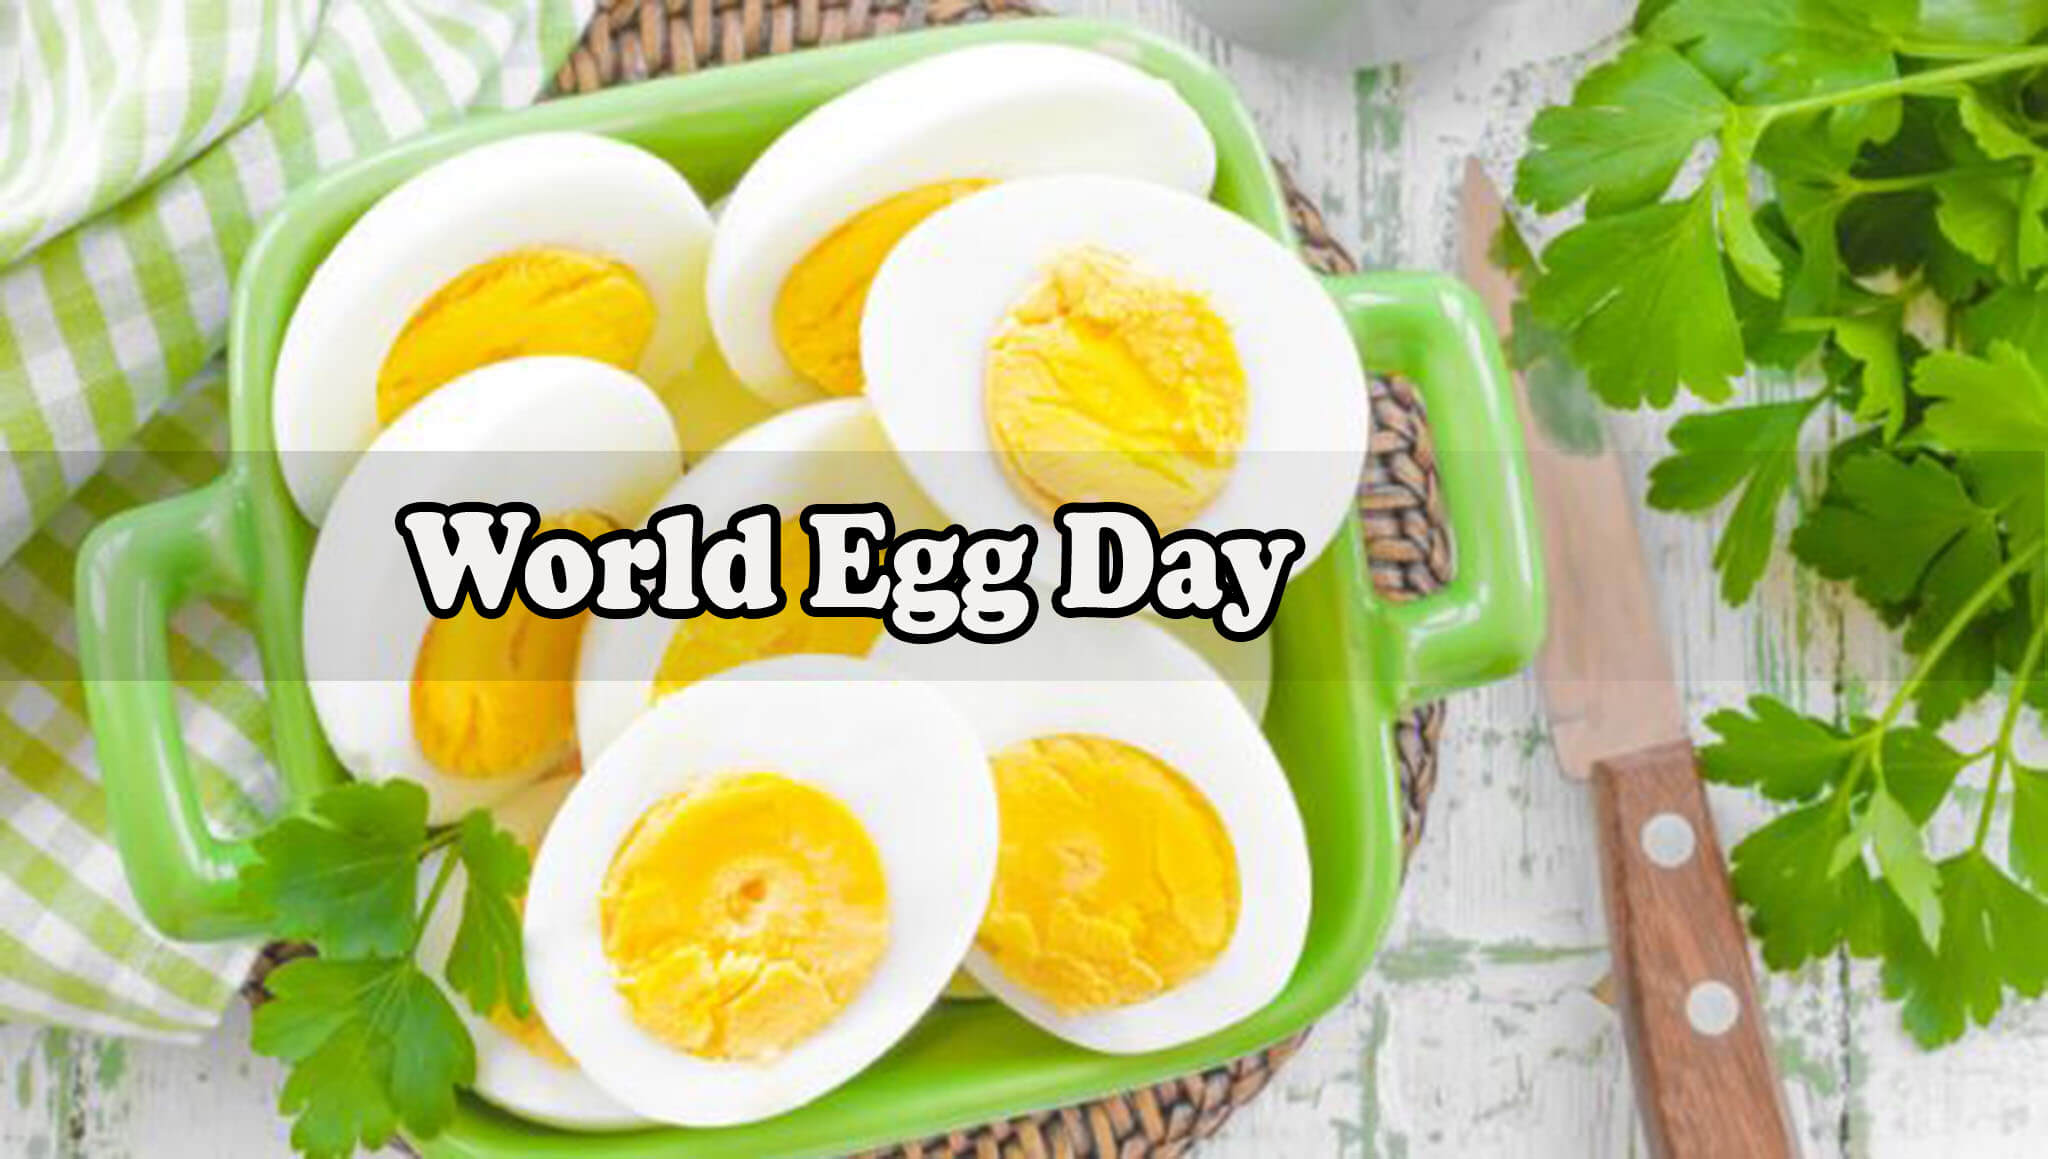 world egg day white half boiled desktop hd wallpaper